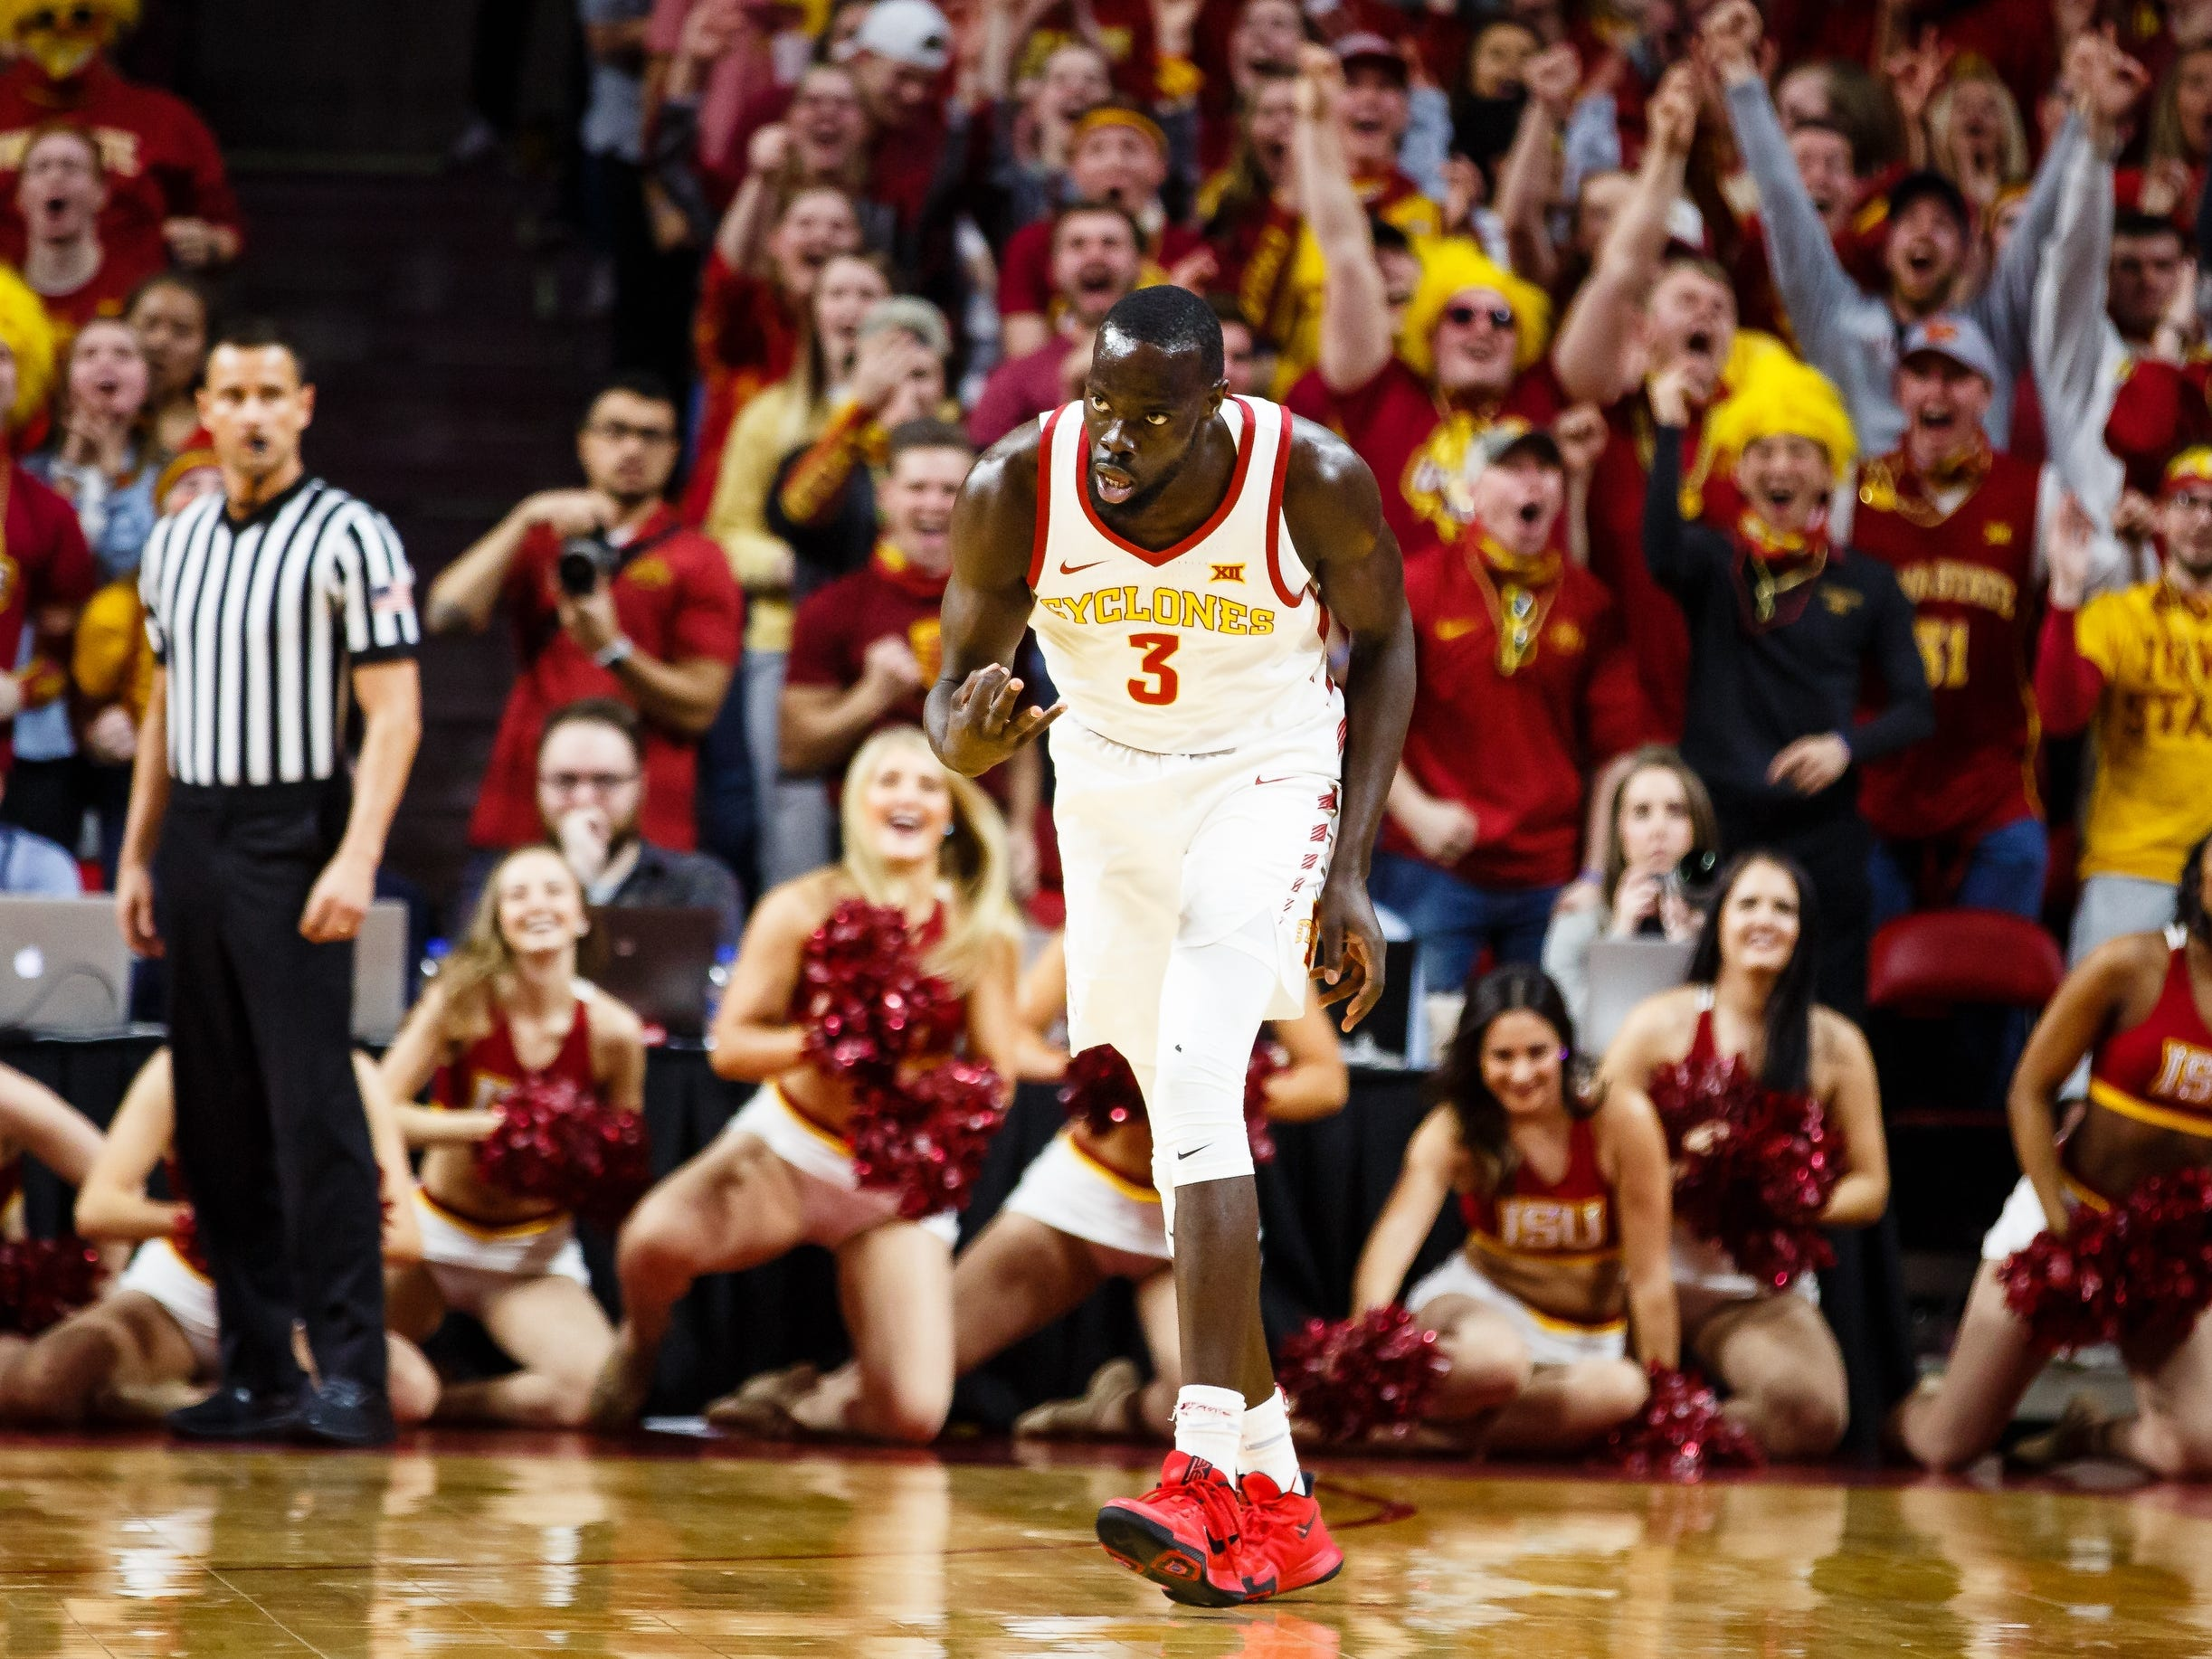 Iowa State's Marial Shayok (3) reacts after hitting a three pointer during the first half of their basketball game on Saturday, Jan. 5, 2019, in Ames. Iowa State would go on to win 77-60 and Shayok lead the game in scoring with 24.